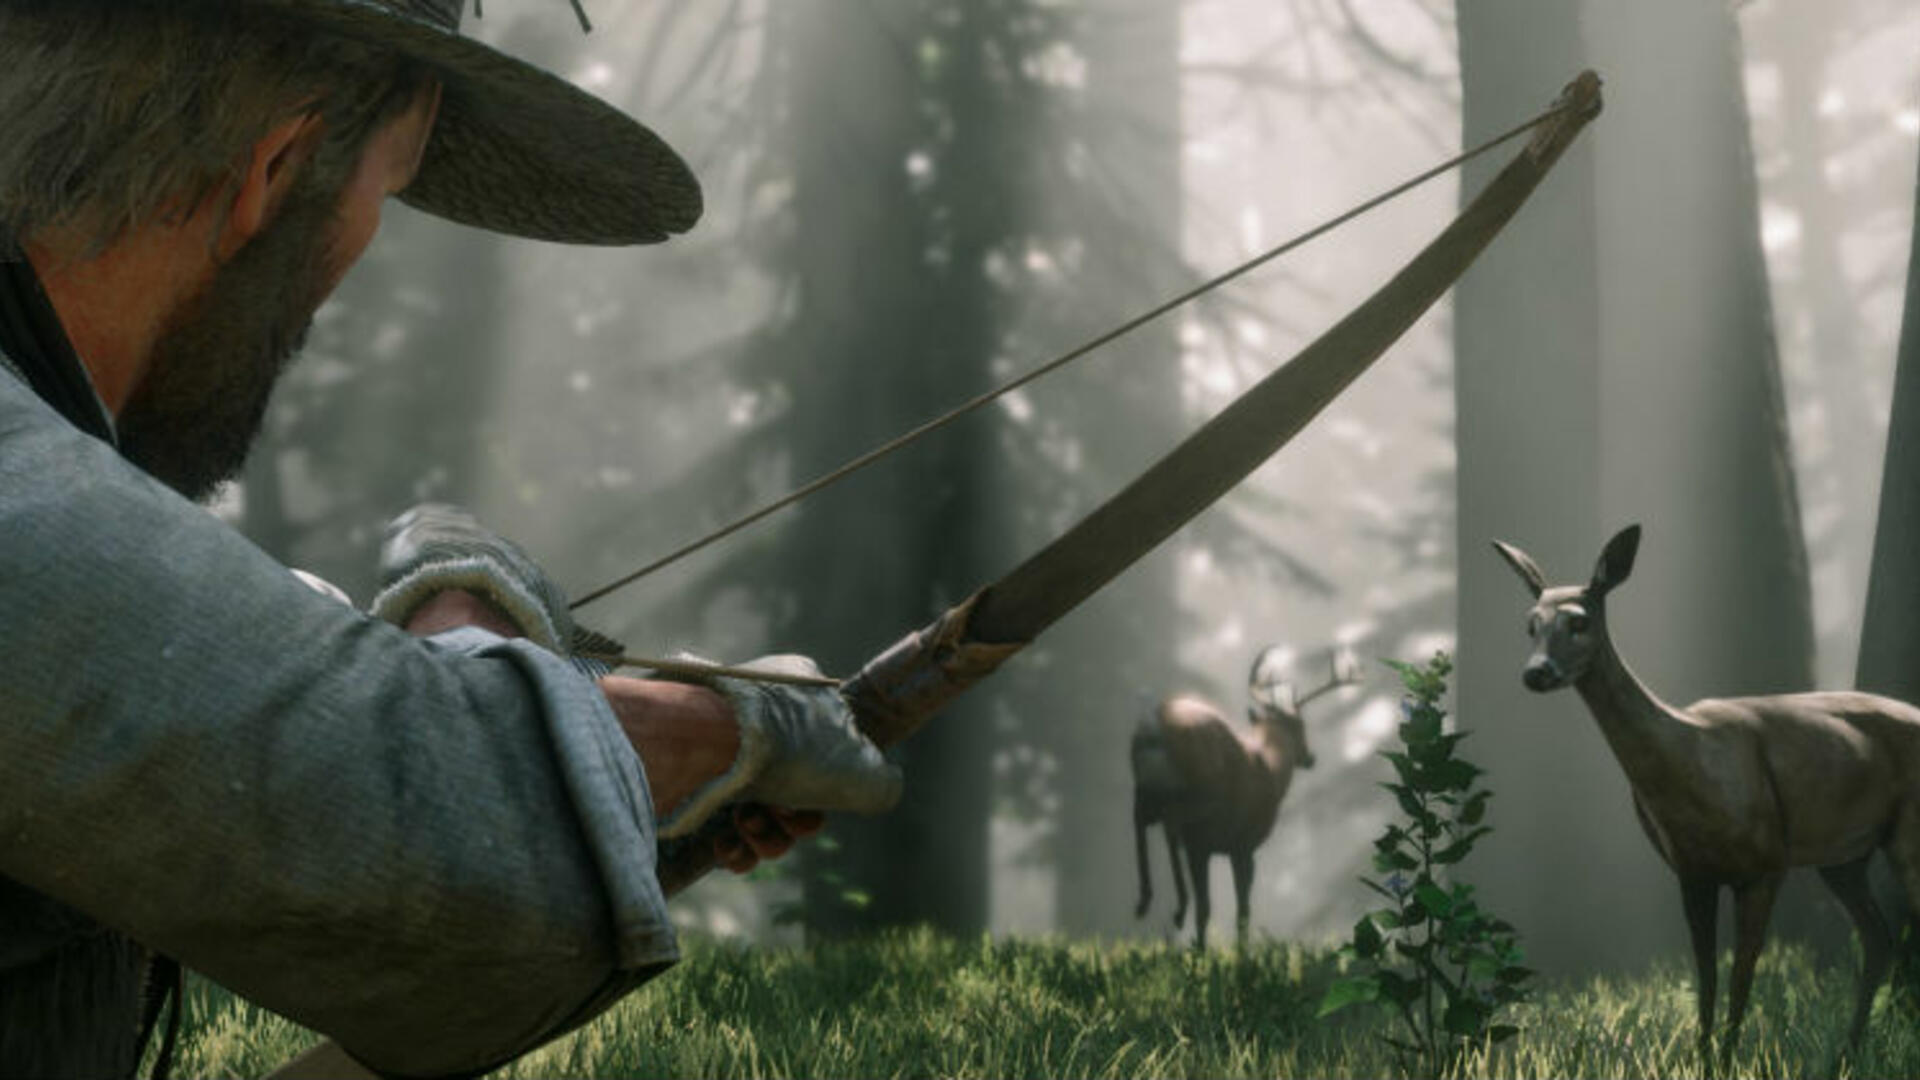 Red Dead Redemption 2 PC Footage 'Leaked' but Some Aren't Convinced It's Real